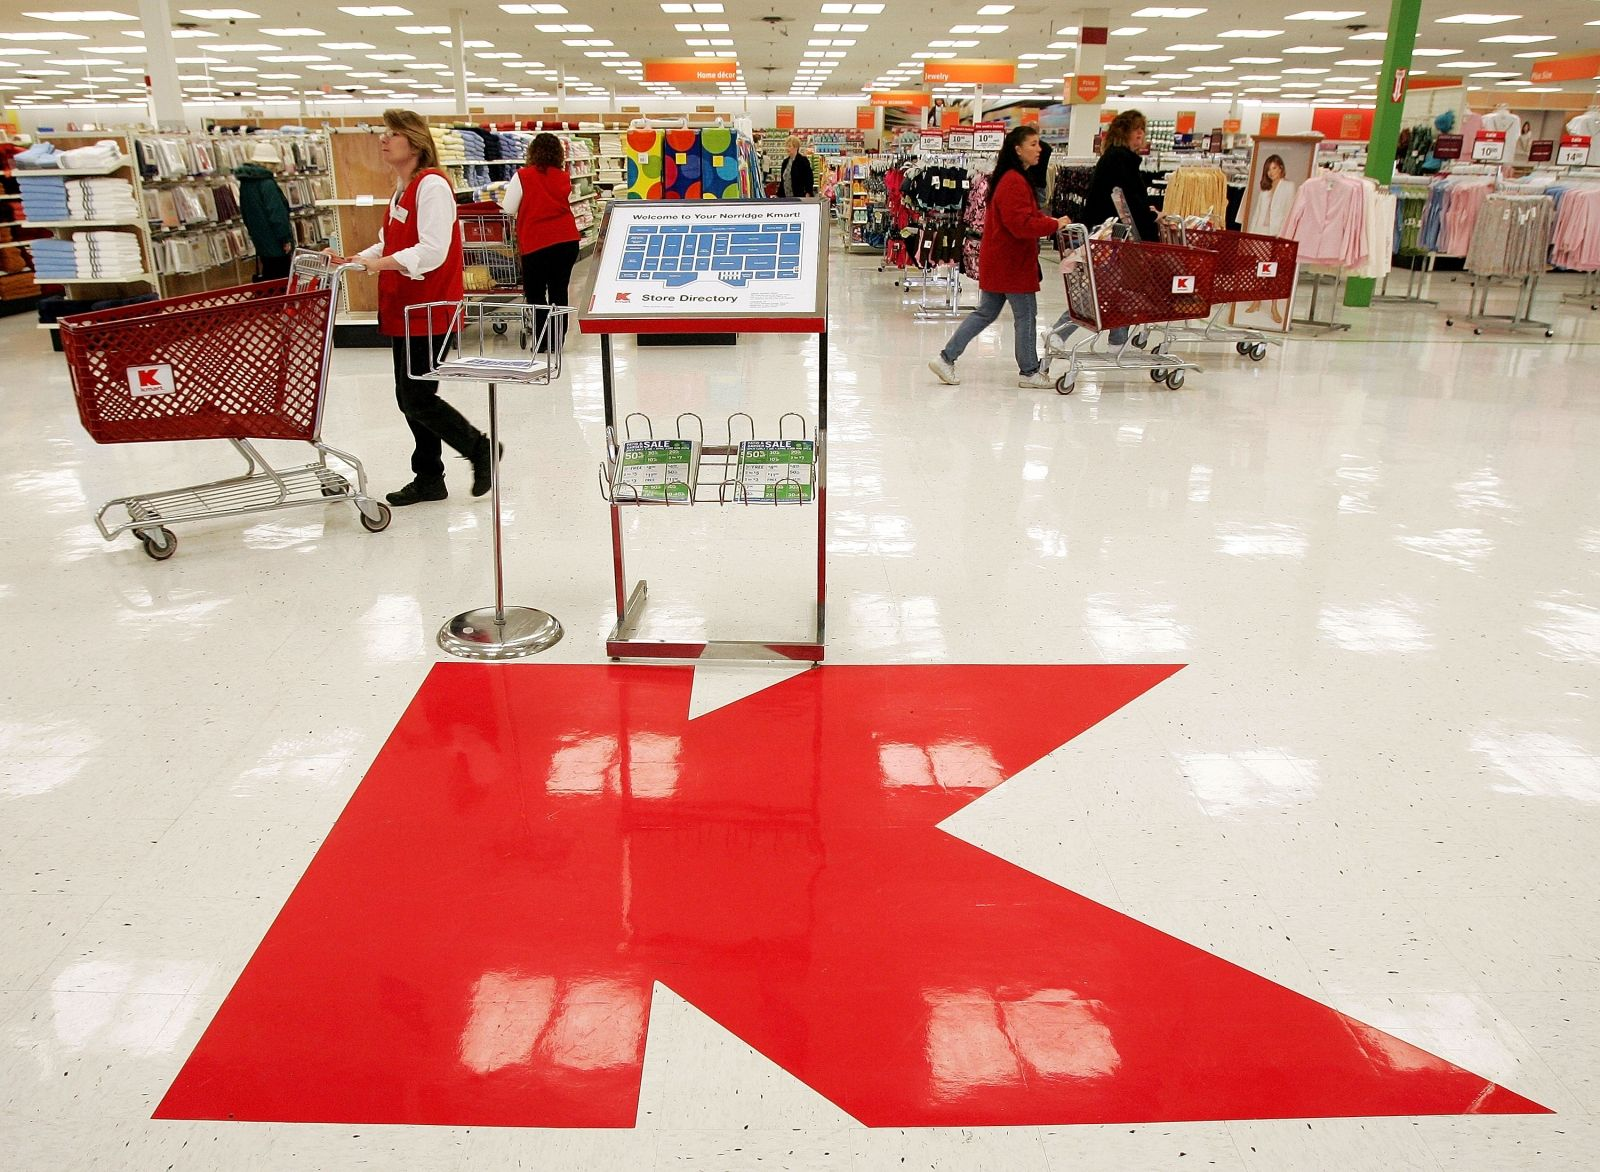 Kmart Hack Parent Company Sears Says Customer Credit Card Data Compromised In Data Breach Kmart Hacks Sears Kmart